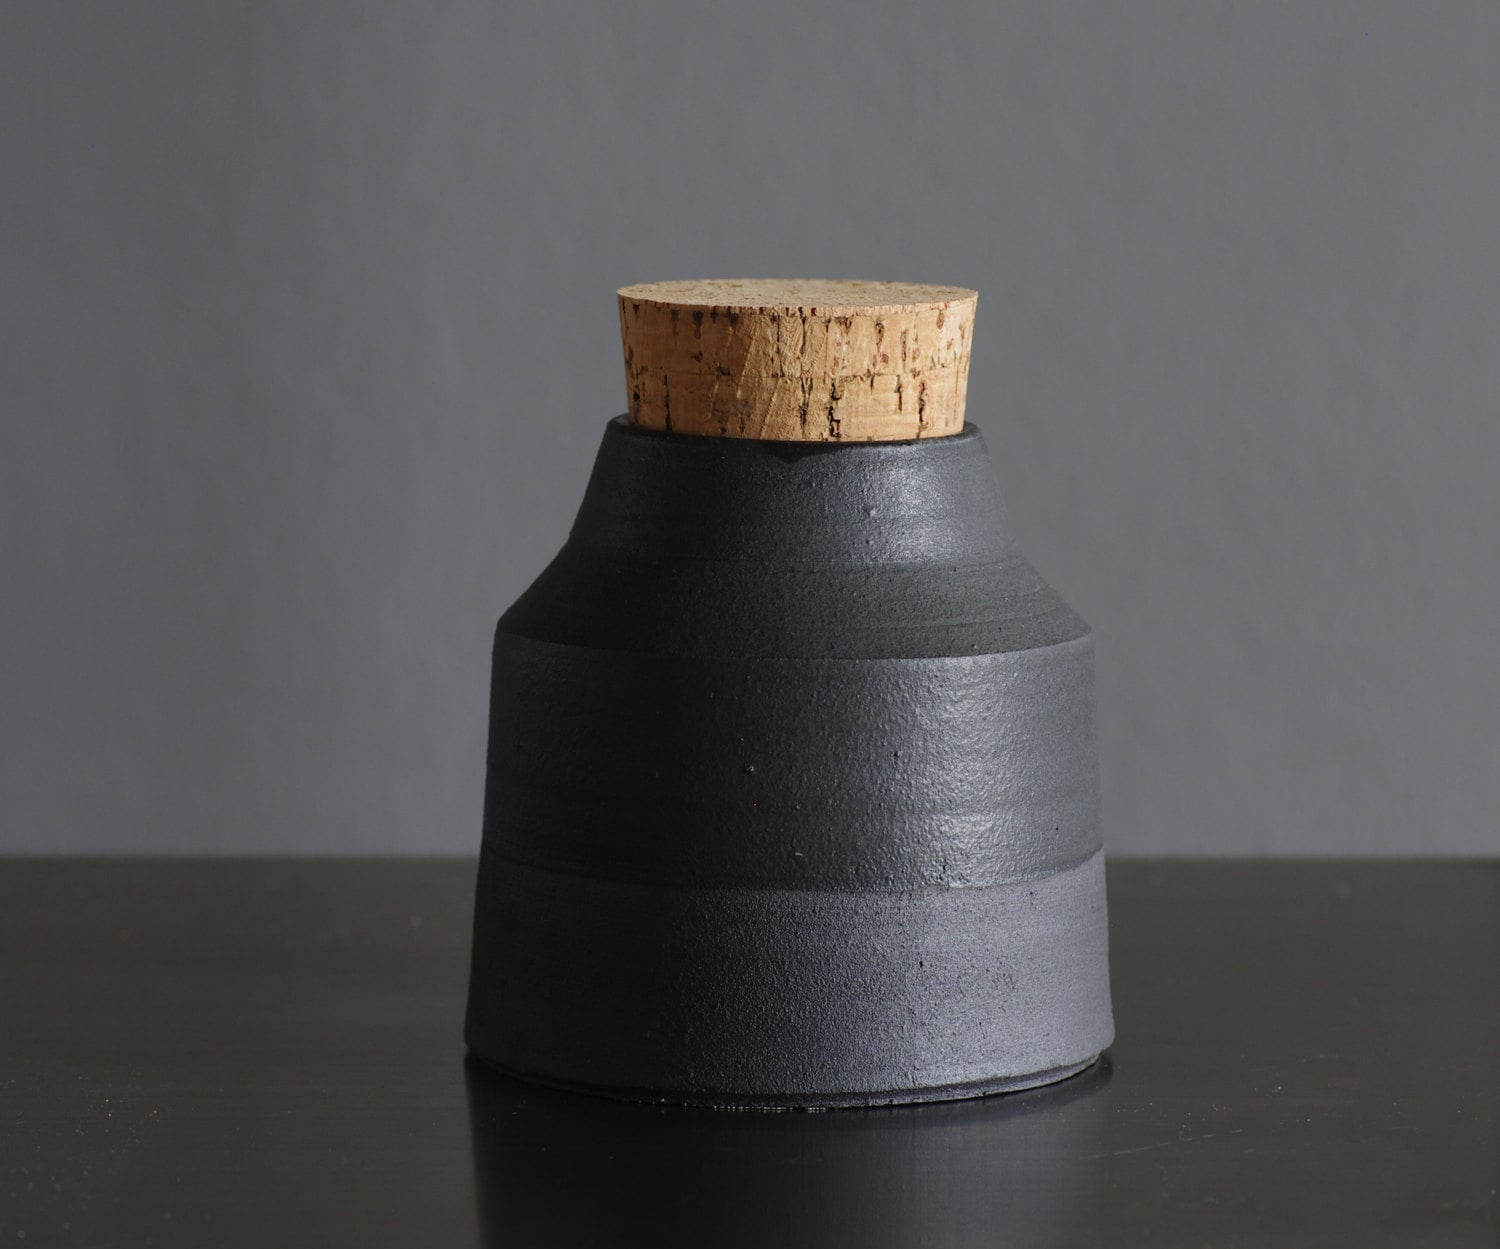 matte black bottle. matte glazed black stoneware bottle with cork stopper. pottery ceramic modern minimal simple - vitrifiedstudio